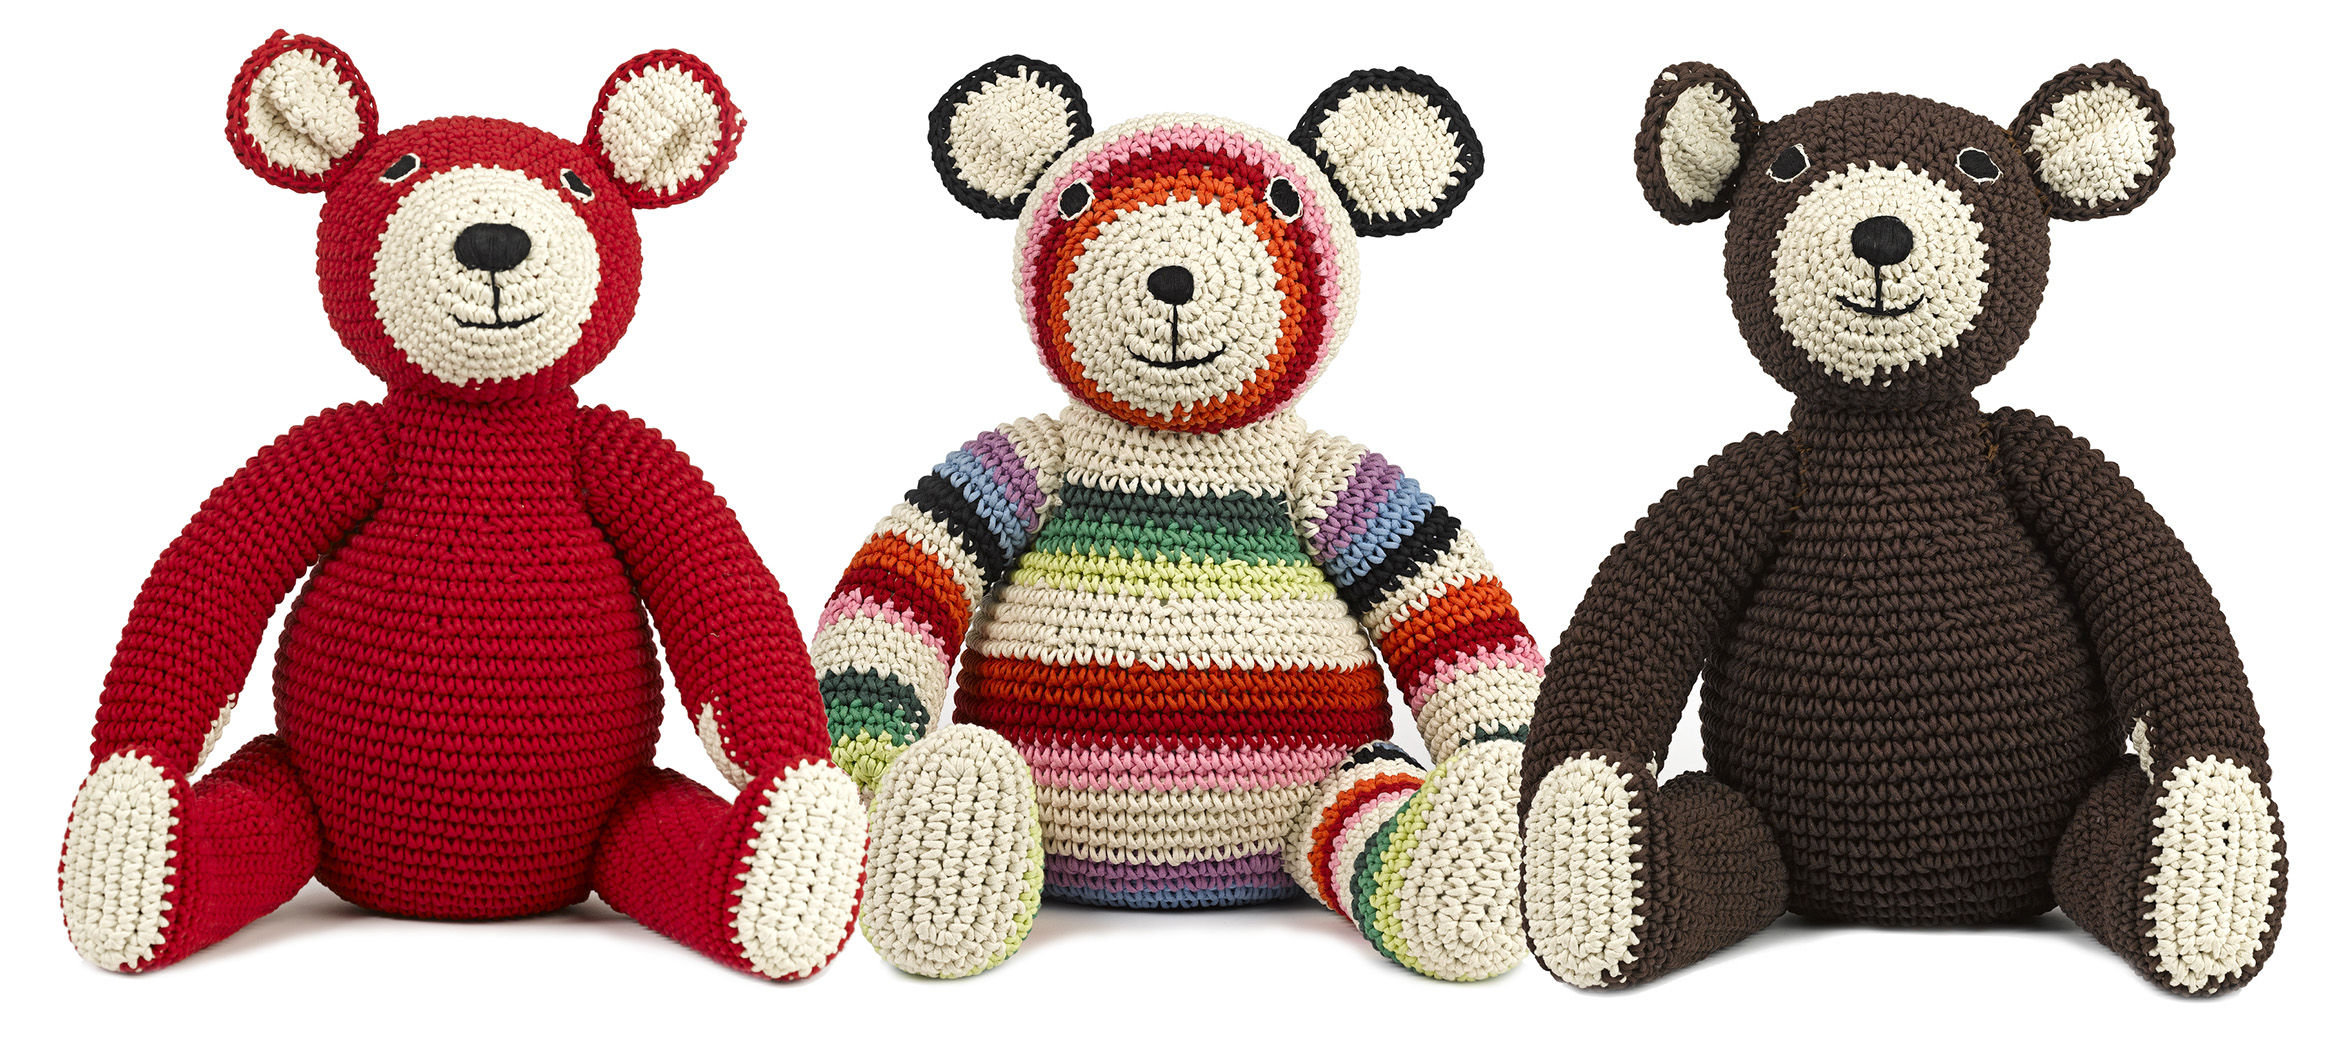 mama teddy cuddly toy crochet cuddly toy mix by anne. Black Bedroom Furniture Sets. Home Design Ideas